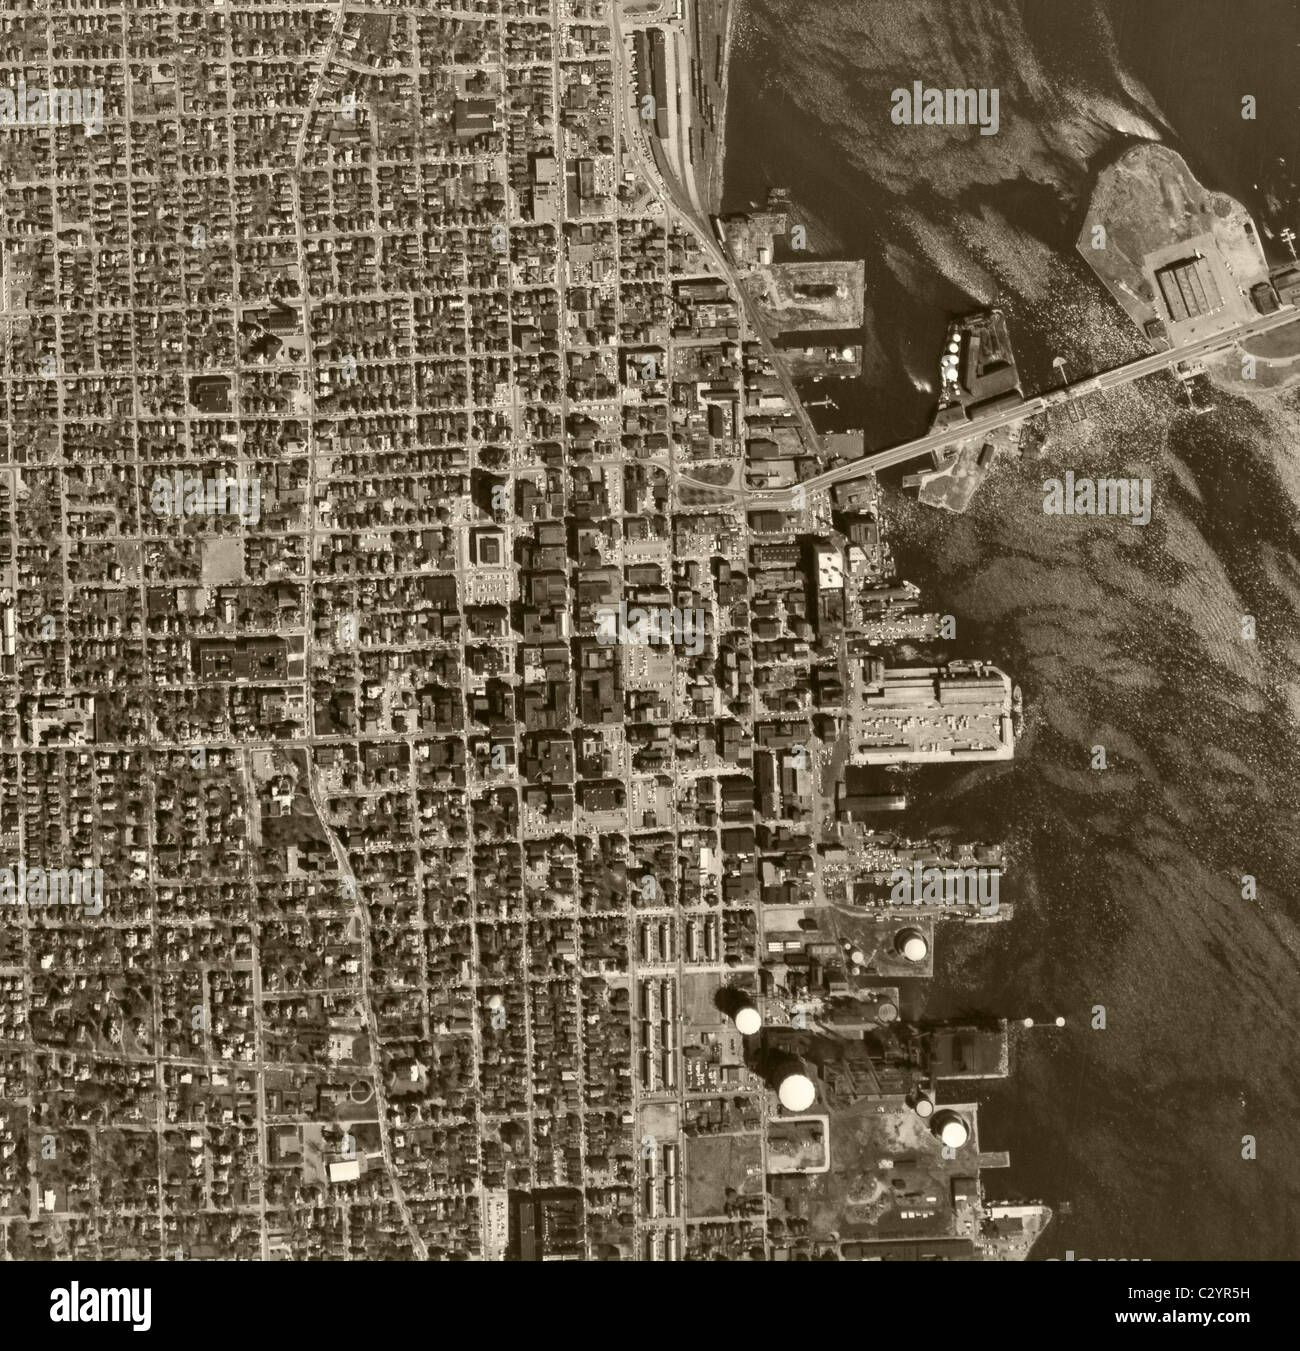 Historical Aerial Map View Above Chicago Illinois Stock Photo - Historical aerial maps